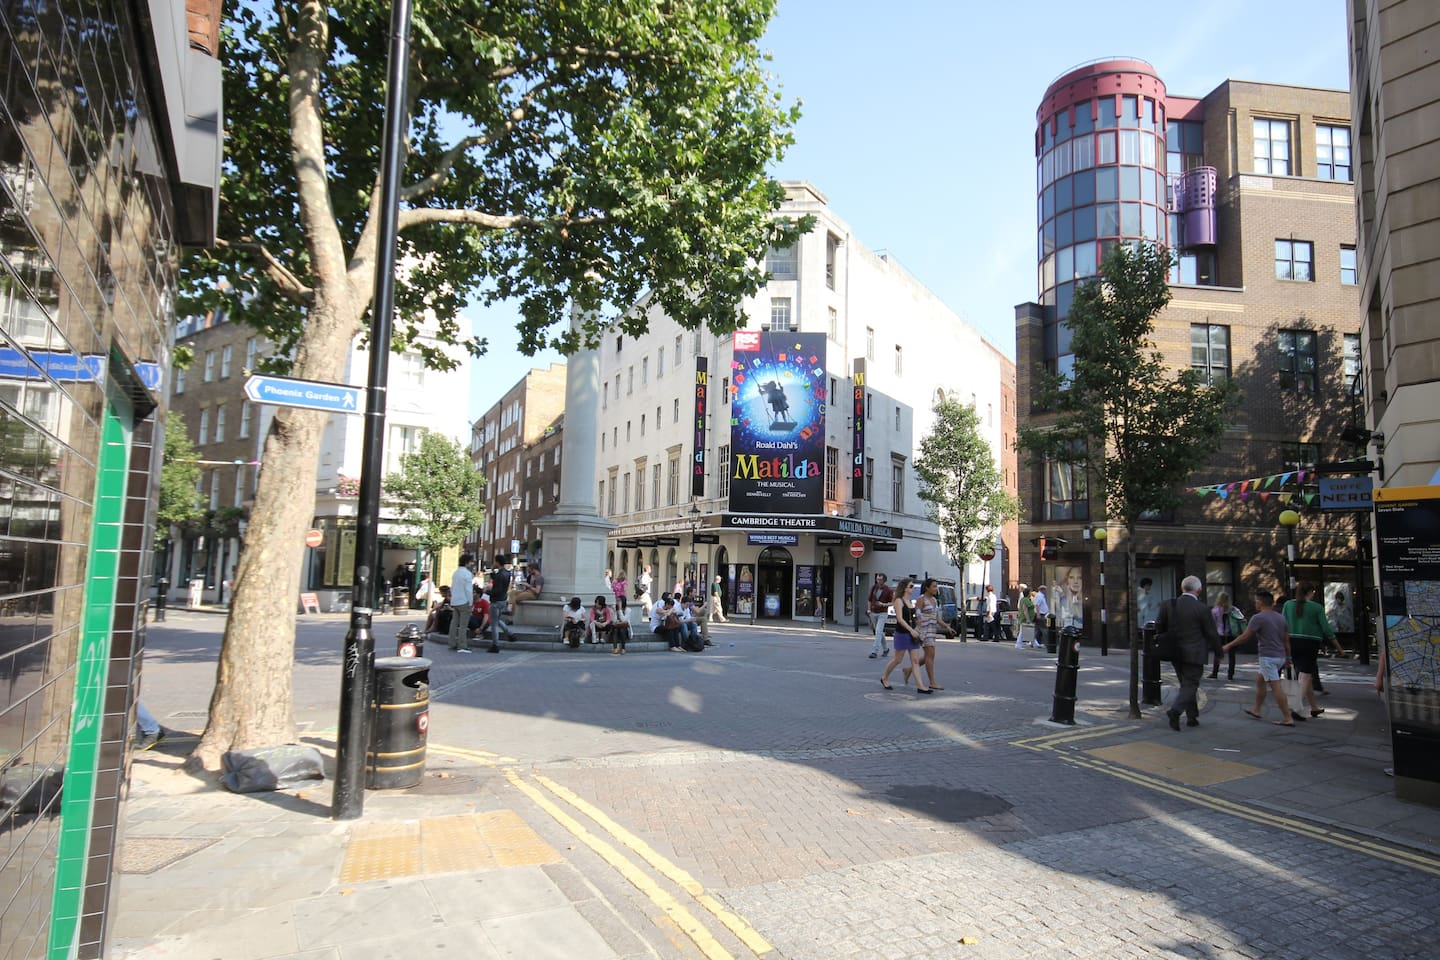 Seven Dials, the cute and quirky village neighbourhood right in the heart of the West End between Covent Garden and Soho.